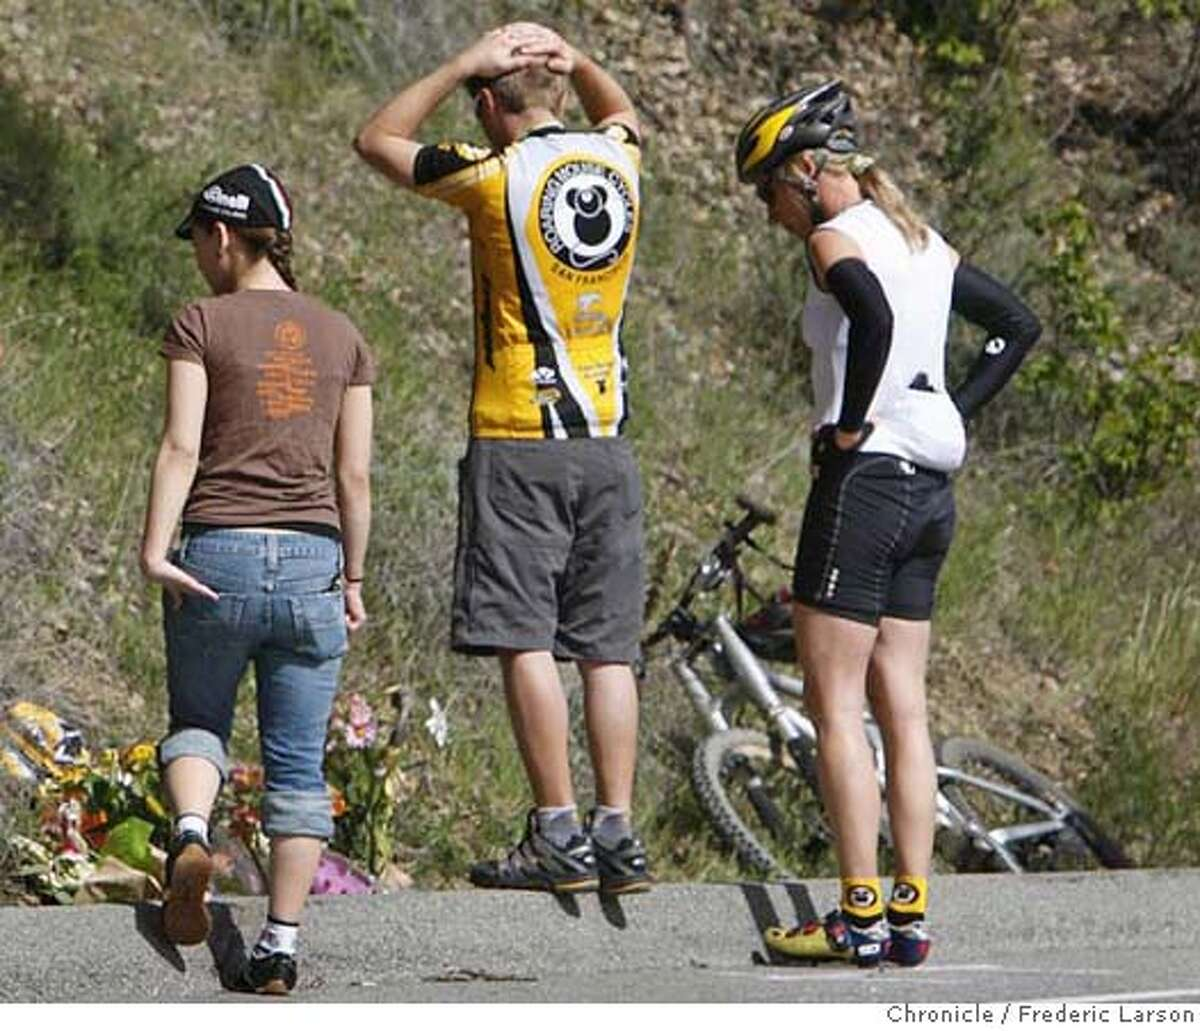 ###Live Caption:Members of the Roaring Mouse Cycling Clug of San Francisco stand by a make shift memorial has was placed at the scene Martch 10, 2008, of where Deputy James Council who was working patrol Sunday morning crossed onto the wrong side of Stevens Canyon Road at 10:25 a.m. and rammed the three southbound bicyclists head-on killing two and injuring the other. 3/10/08 Photo by Frederic Larson / San Francisco Chronicle###Caption History:Members of the Roaring Mouse Cycling Clug of San Francisco stand by a make shift memorial has was placed at the scene Martch 10, 2008, of where Deputy James Council who was working patrol Sunday morning crossed onto the wrong side of Stevens Canyon Road at 10:25 a.m. and rammed the three southbound bicyclists head-on killing two and injuring the other. 3/10/08 Photo by Frederic Larson / San Francisco Chronicle###Notes:###Special Instructions:MANDATORY CREDIT FOR PHOTOG AND SAN FRANCISCO CHRONICLE/NO SALES-MAGS OUT